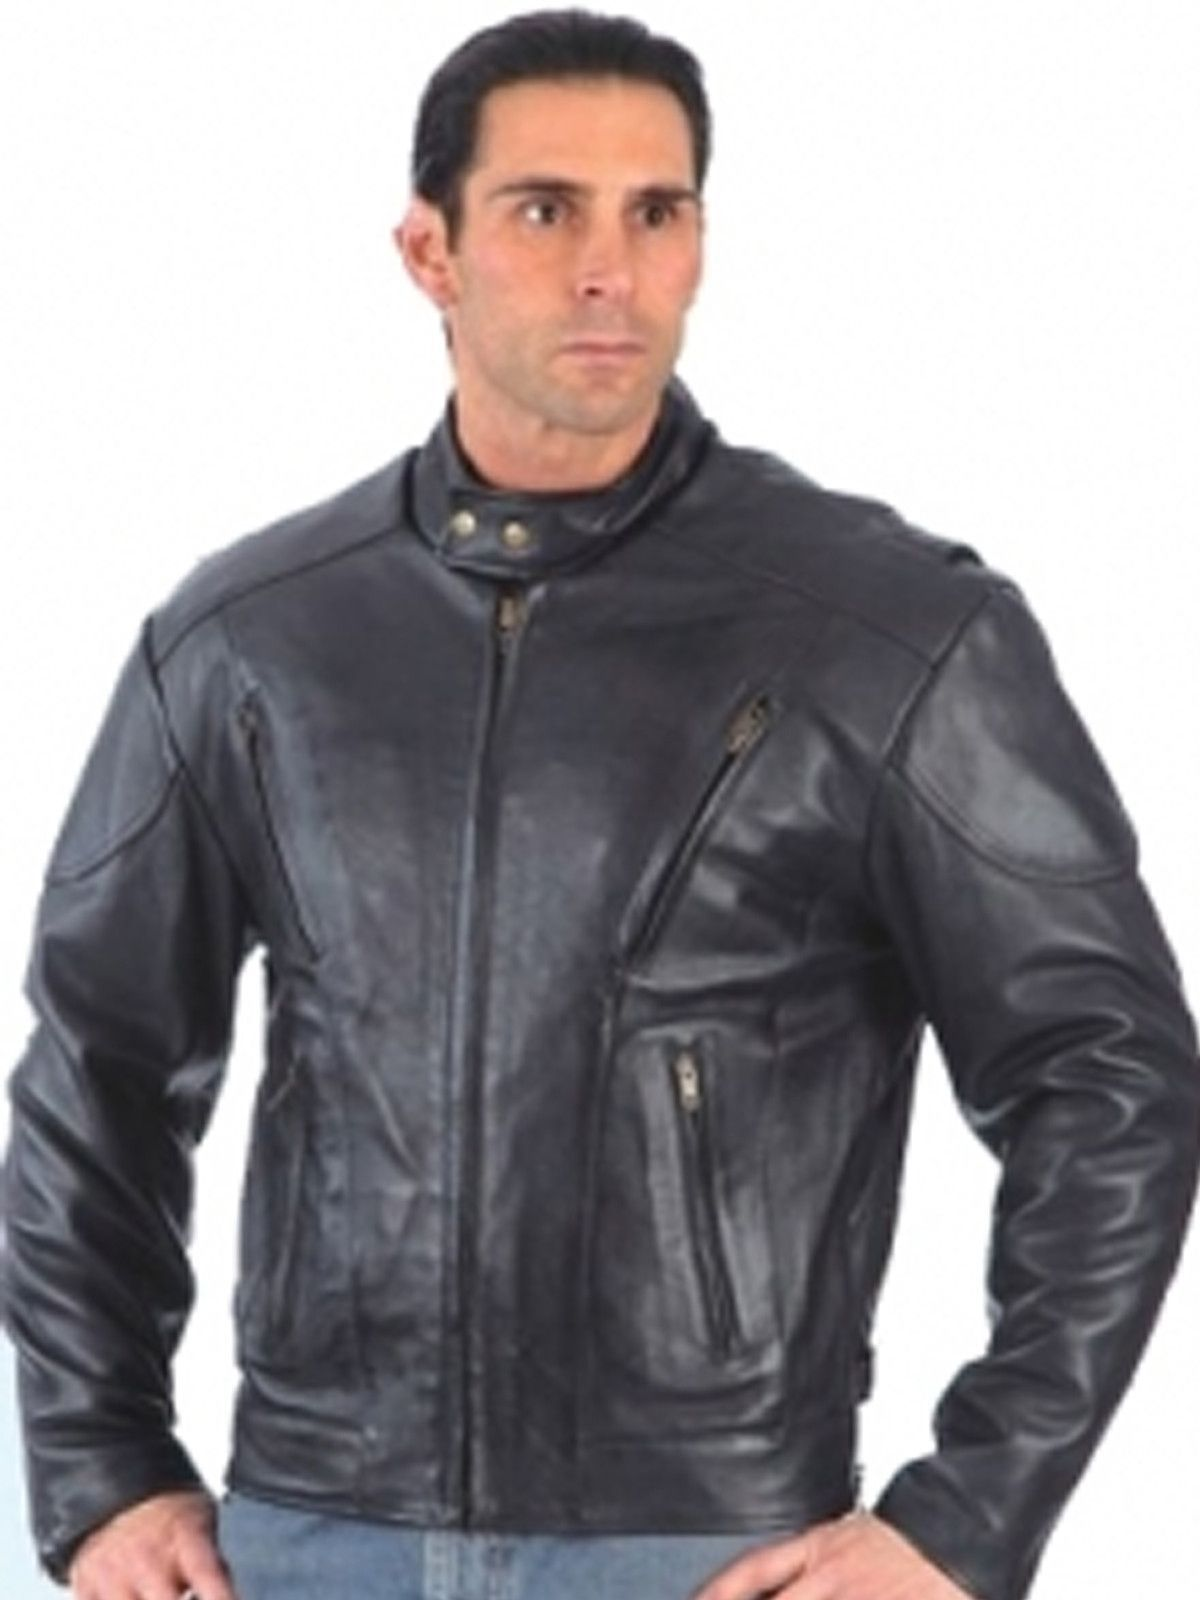 Unik Men S Big Tall Black Leather Motorcycle Jacket With Kidney Protection Black Leather Motorcycle Jacket Leather Motorcycle Jacket Mens Black Leather [ 1600 x 1200 Pixel ]